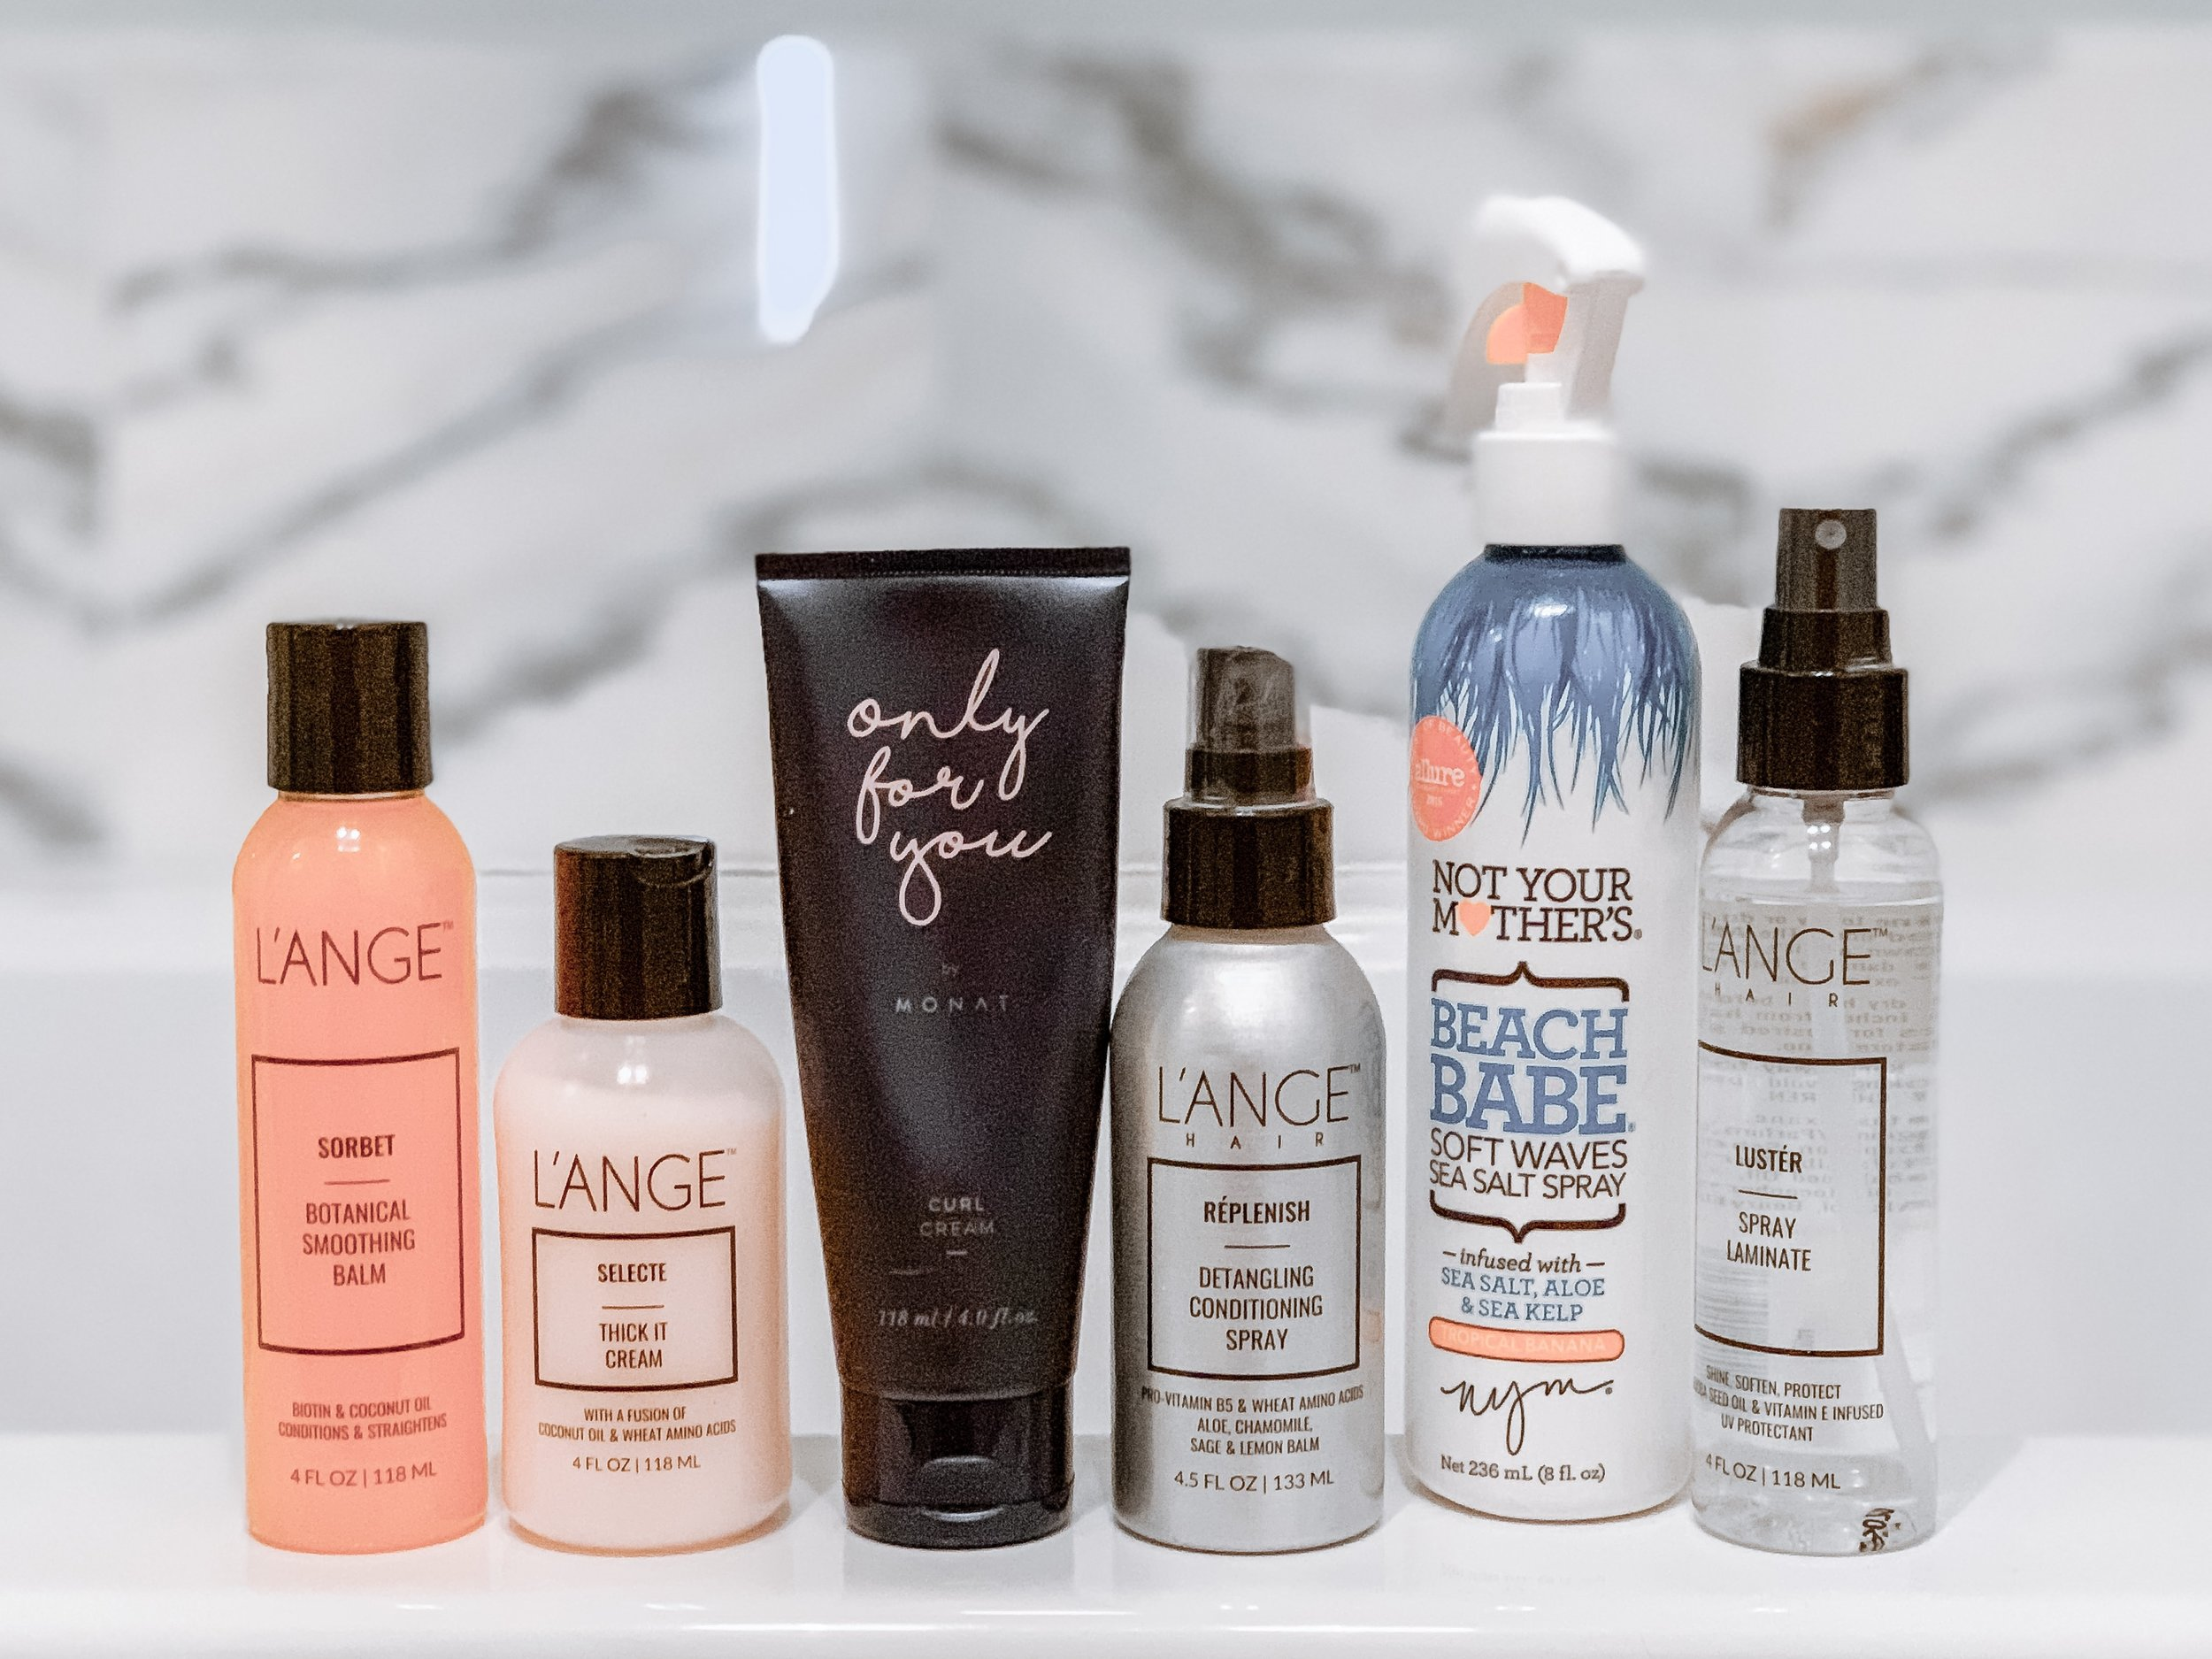 L'Ange Sorbet ,  L'Ange Thick It Cream ,  Monat Curl Defining Cream ,  L'Ange Conditioning Spray ,  Not Your Mother's Sea Salt Spray , &  L'Ange Spray Laminate